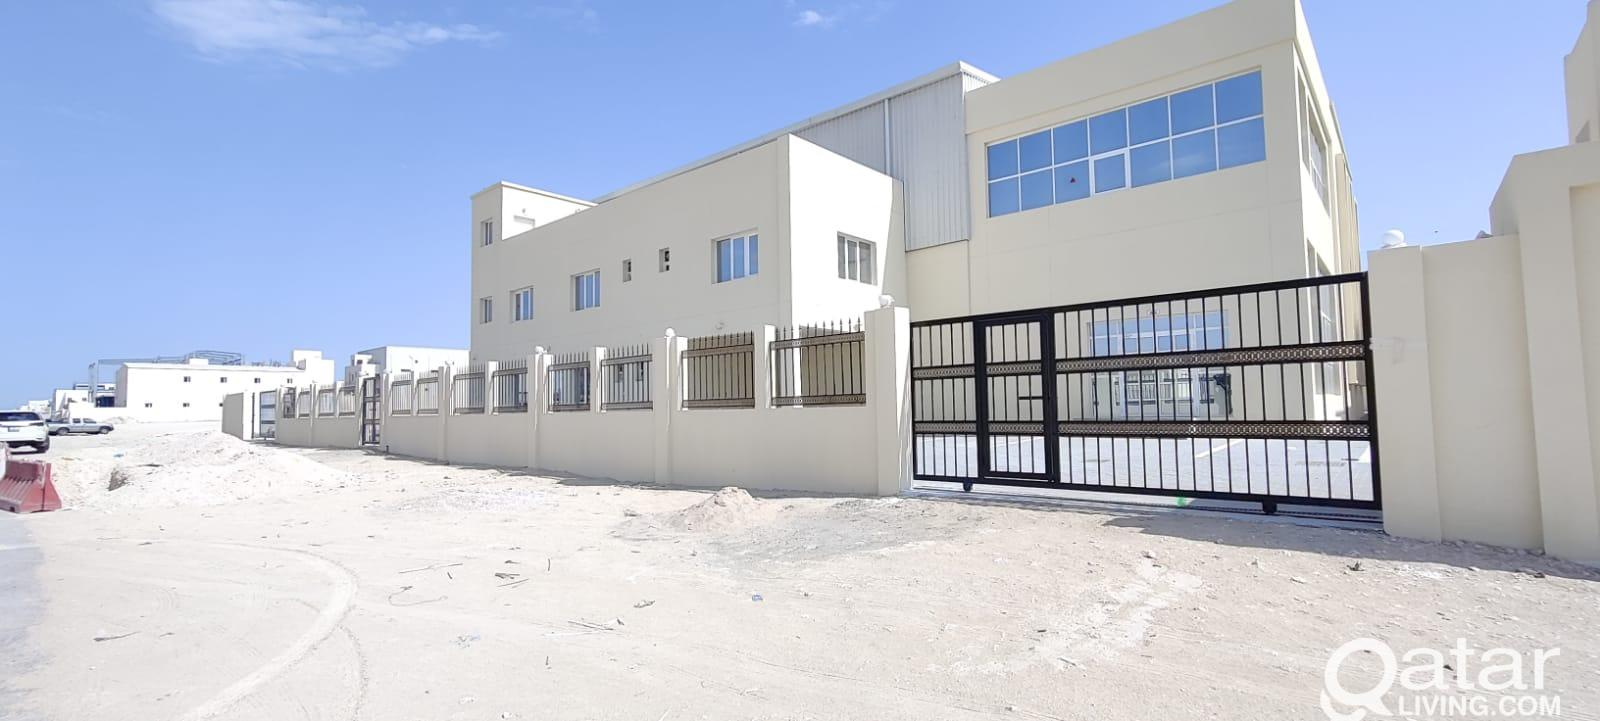 2000 Land with Store, Showroom, Office & Accommoda